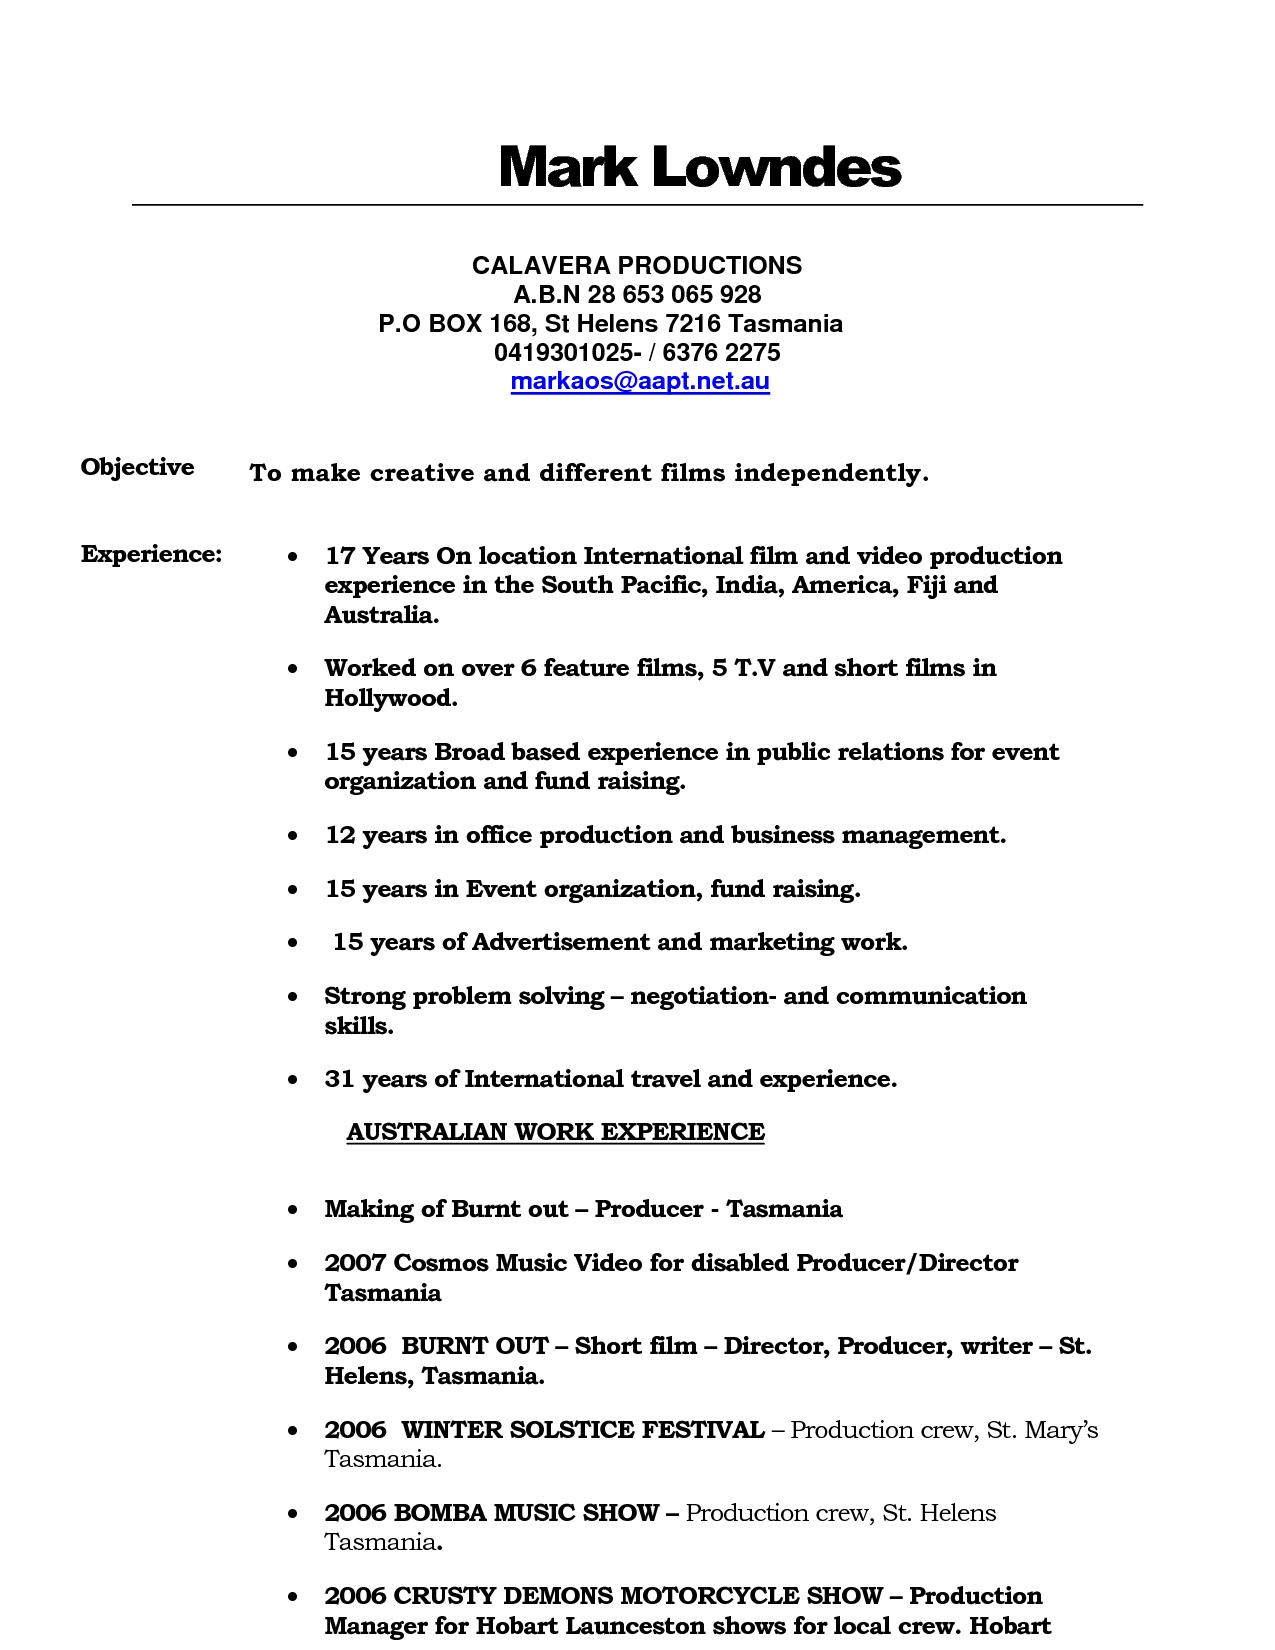 Film Production Assistant Resume Template - http://www.resumecareer ...